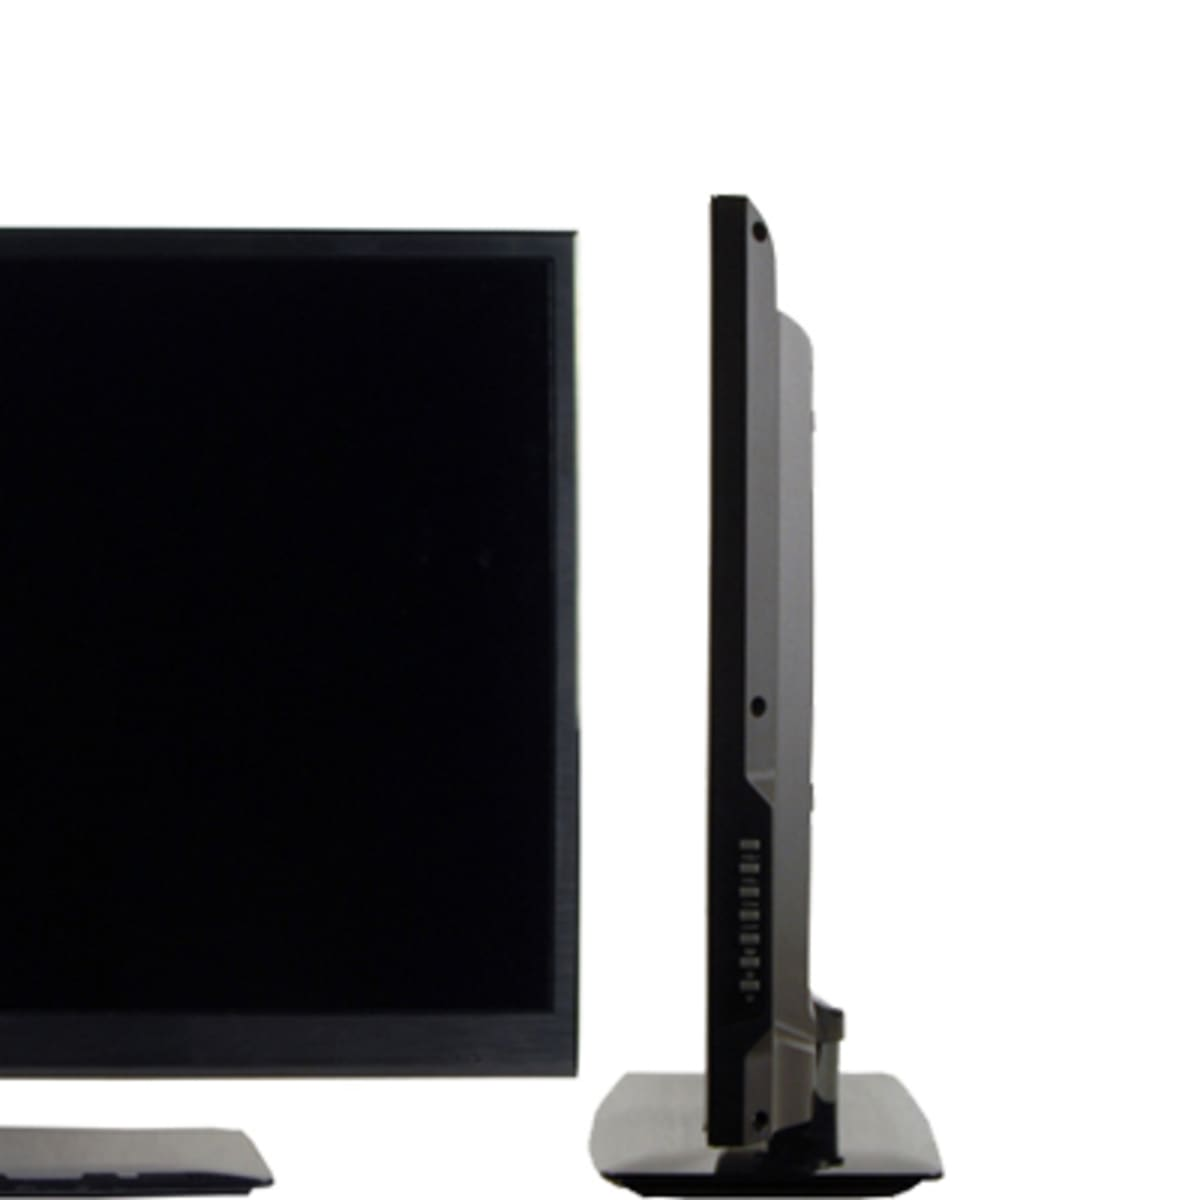 Sceptre E325BV-HDH LED TV Review - Reviewed Televisions